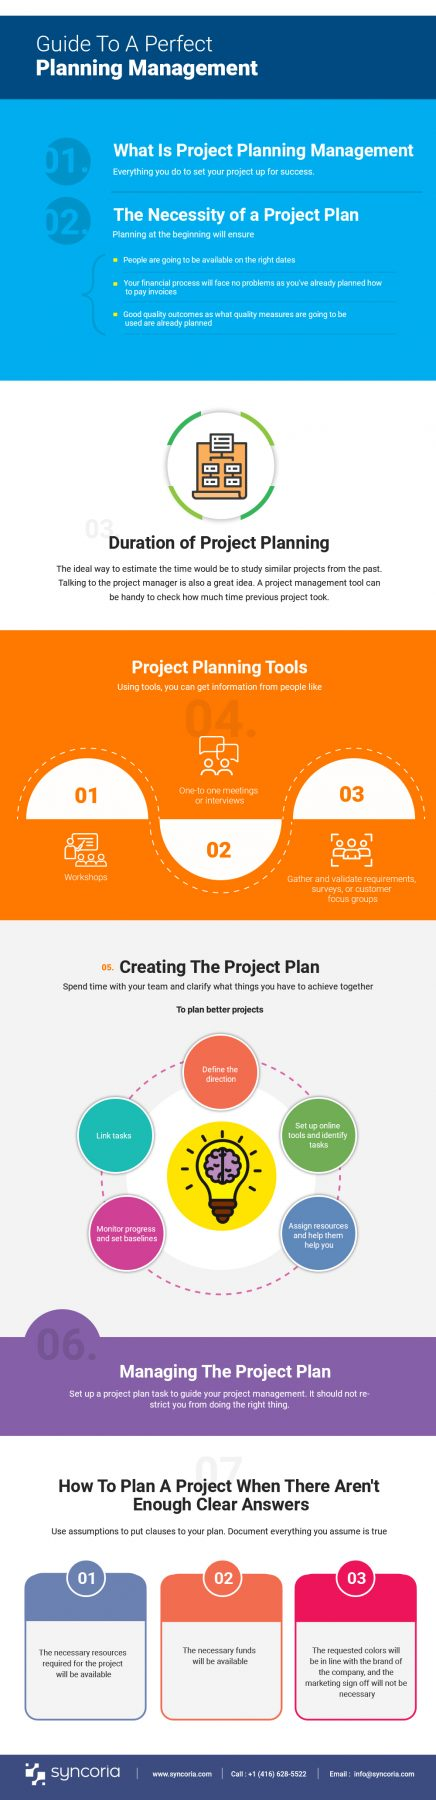 Effective Project Planning Management